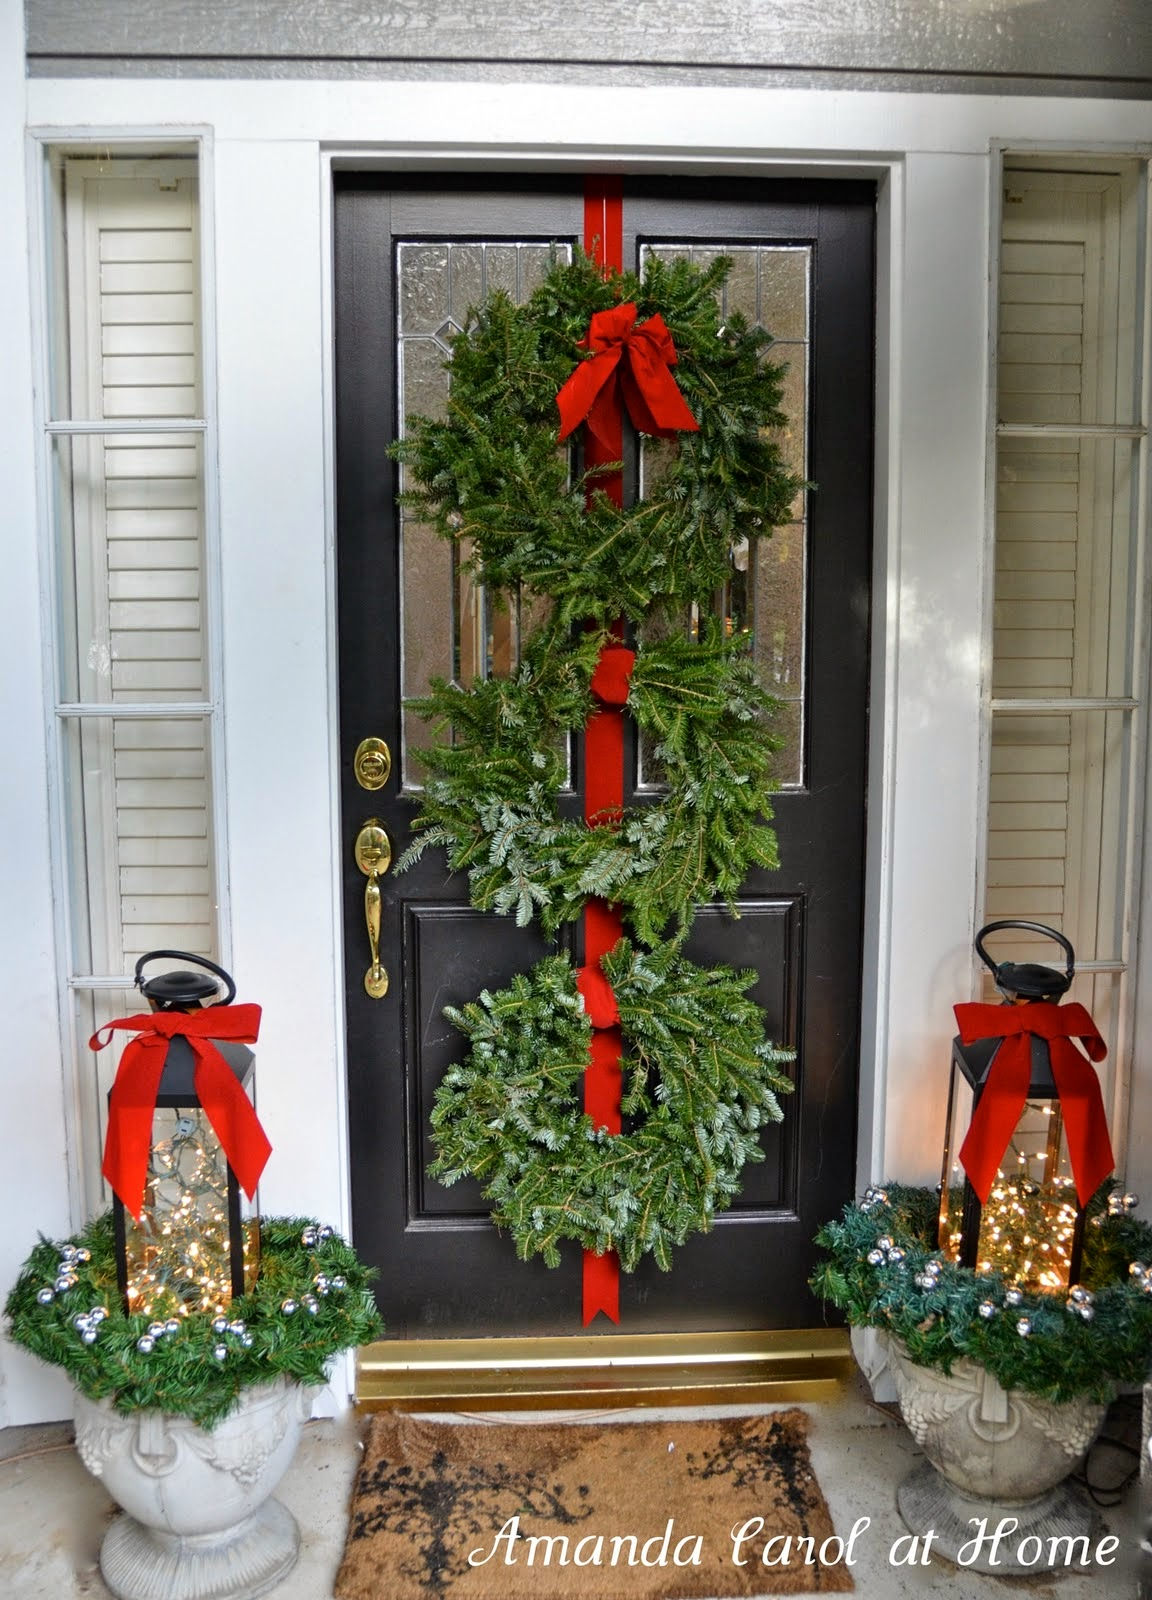 7 front porch decorating ideas pictures for your home for Decorating a small front porch for christmas